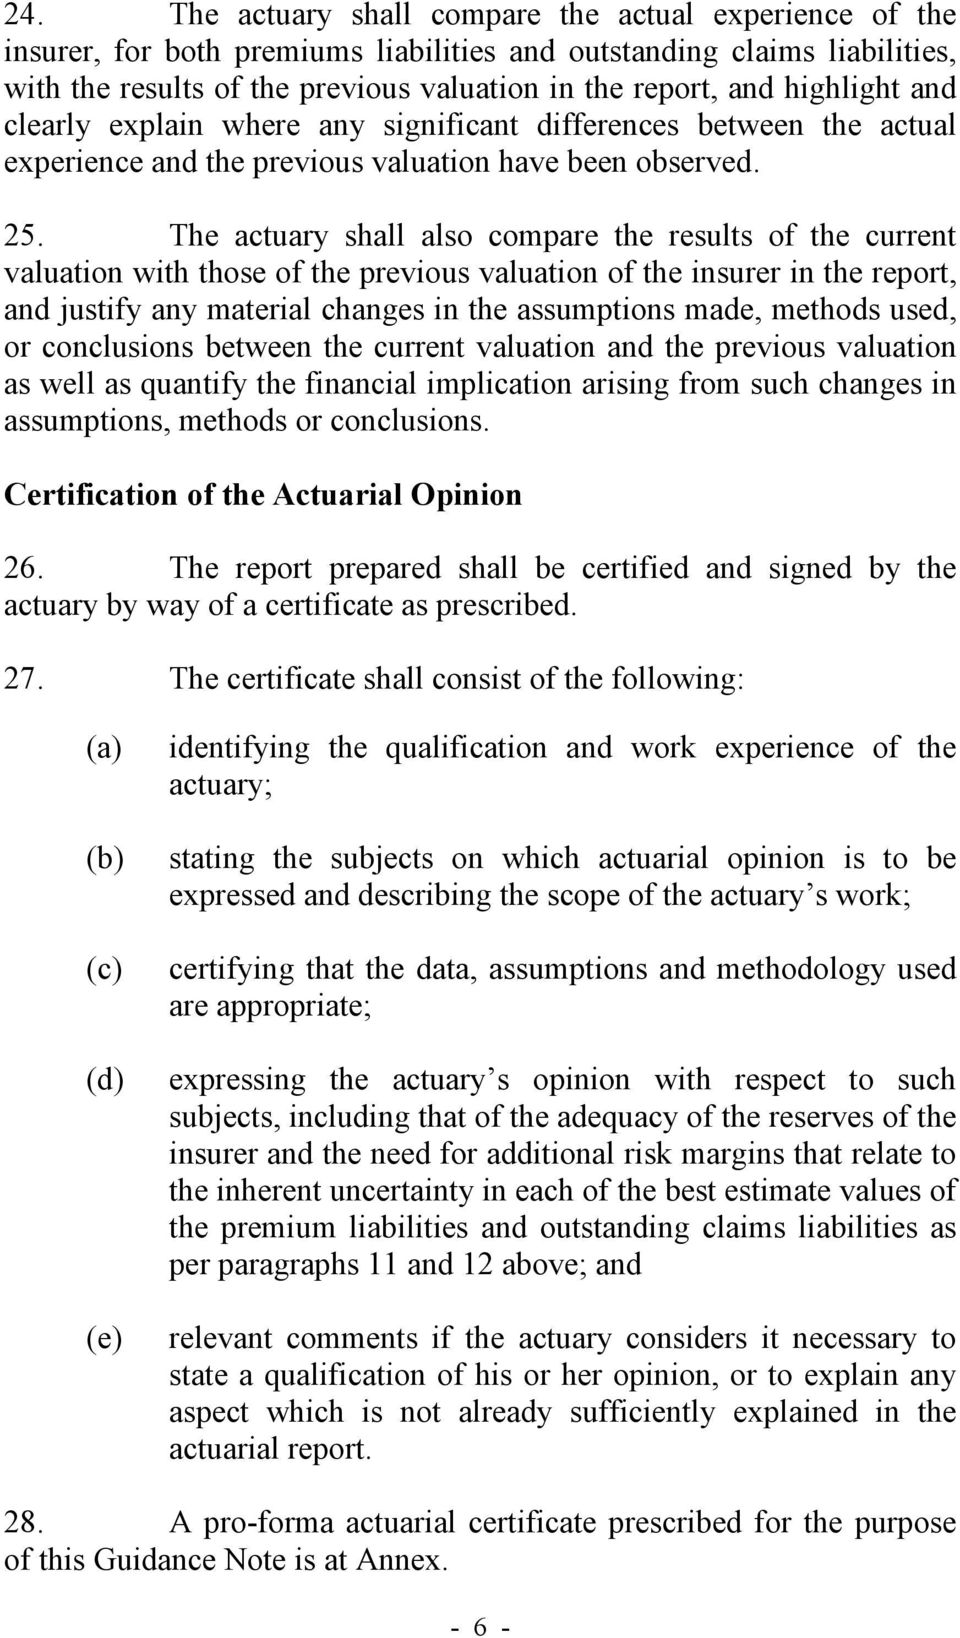 The actuary shall also compare the results of the current valuation with those of the previous valuation of the insurer in the report, and justify any material changes in the assumptions made,